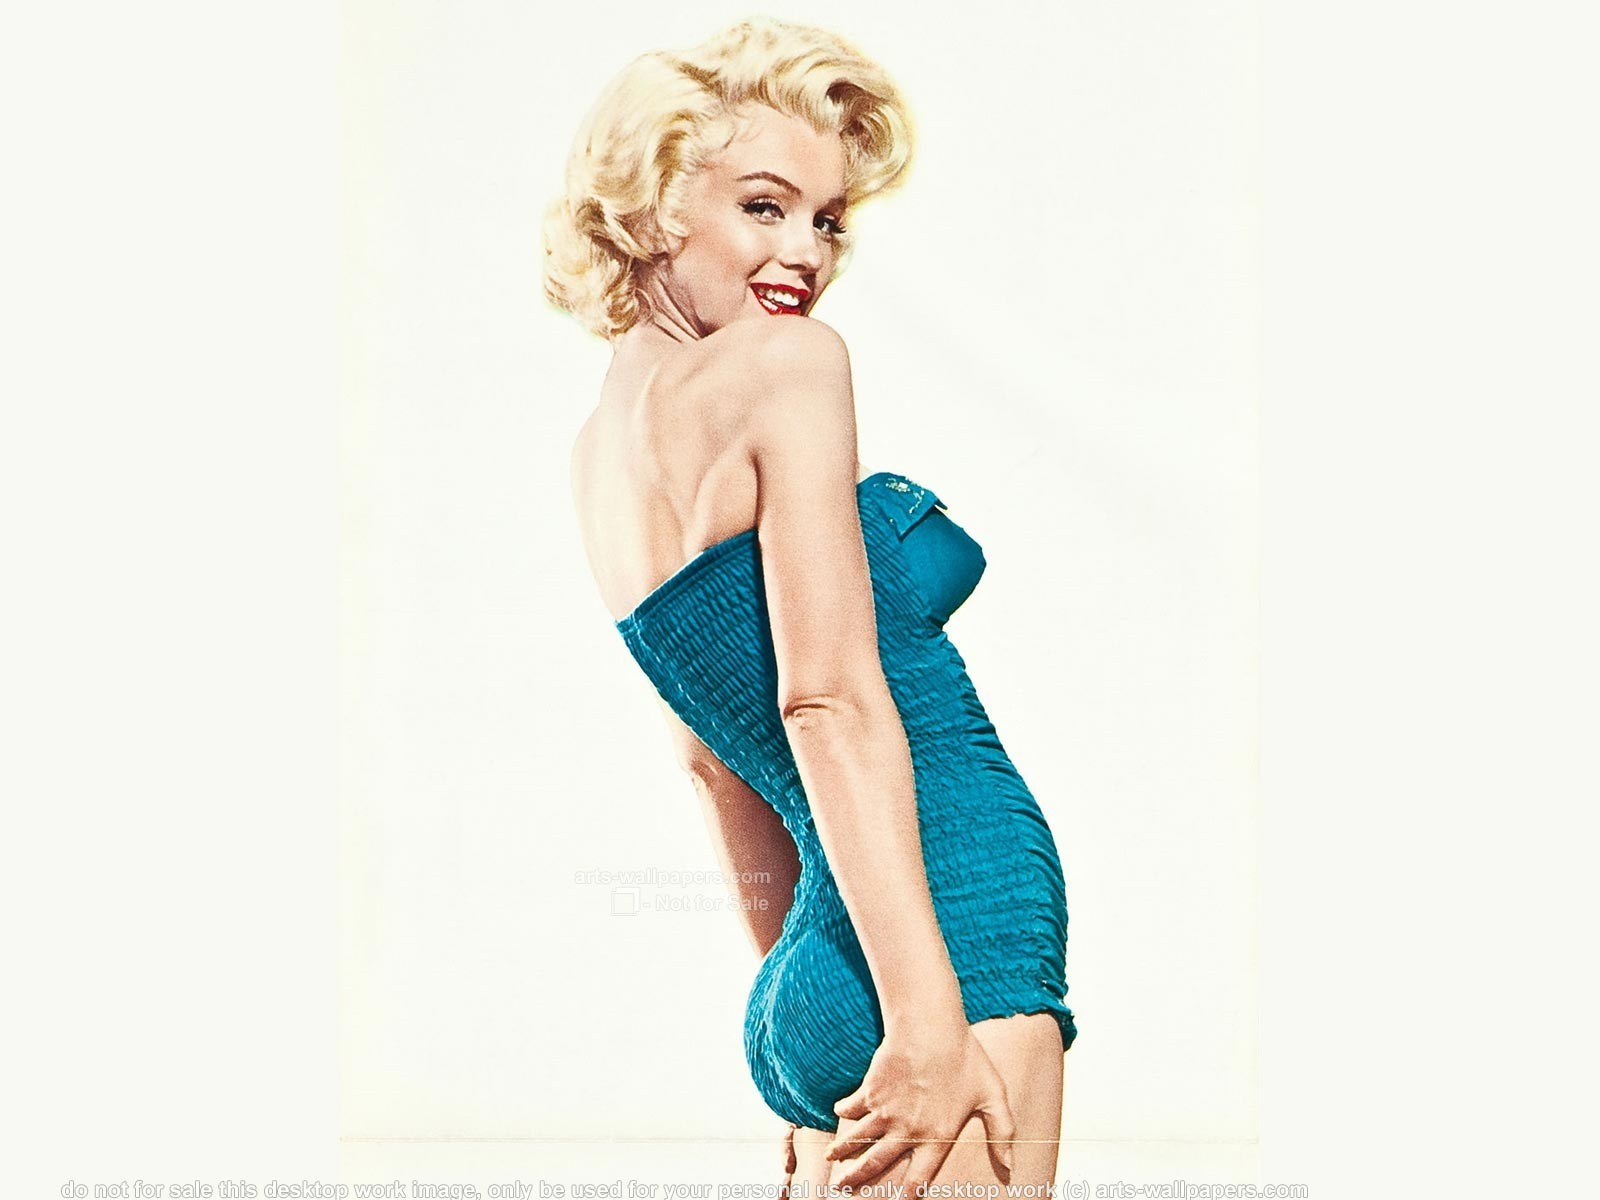 Marilyn Monroe posters HD Wallpaper